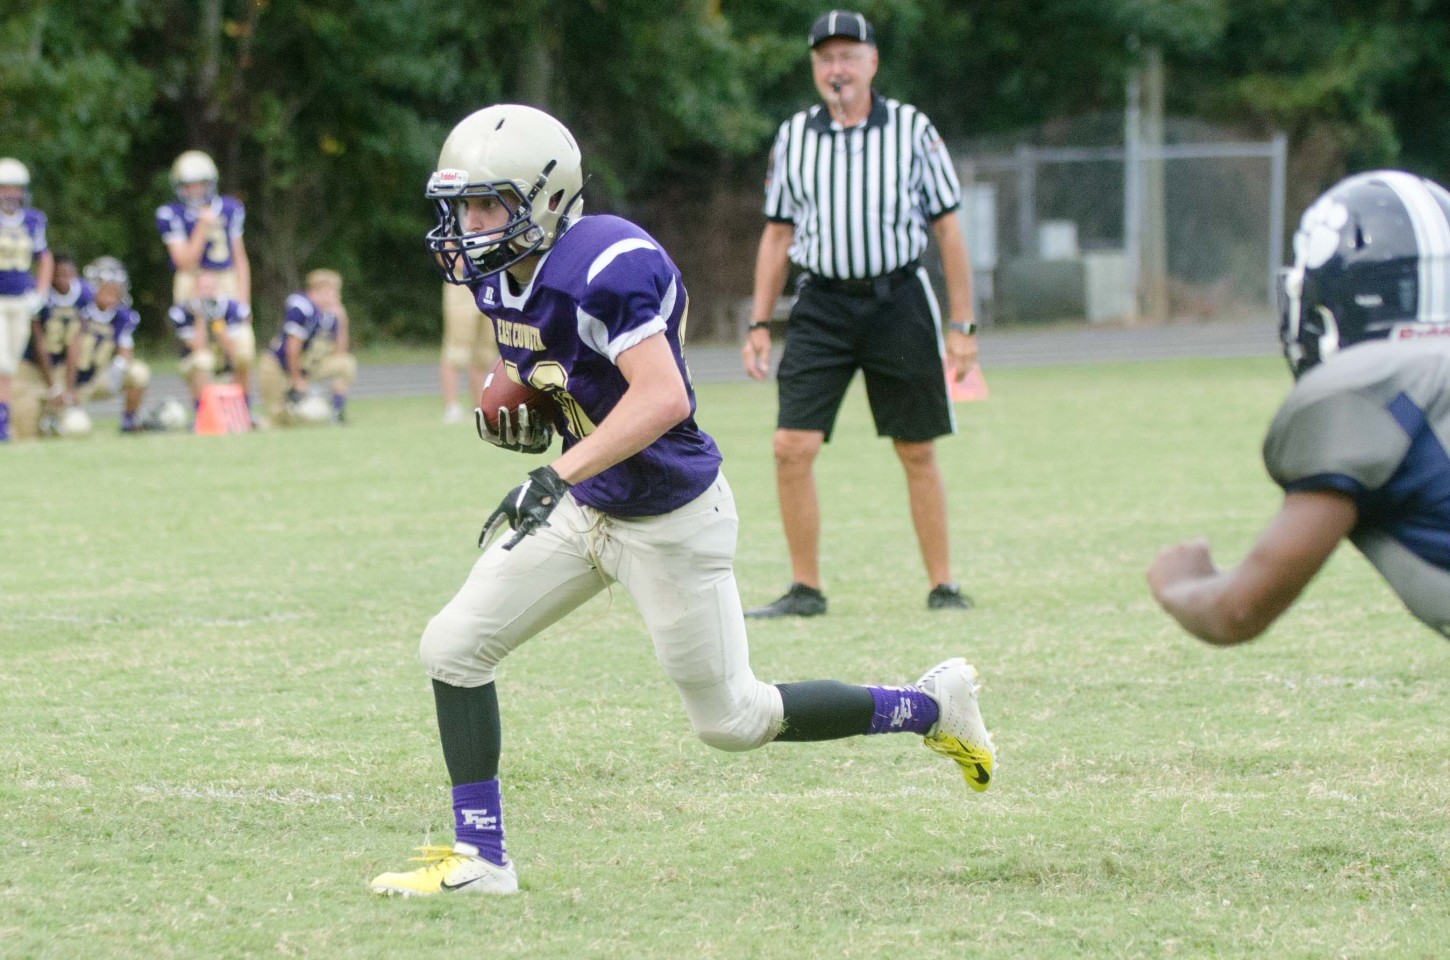 Ethan Fryer set a new individual record at ECMS with 203 of the Indians' 418 yards rushing